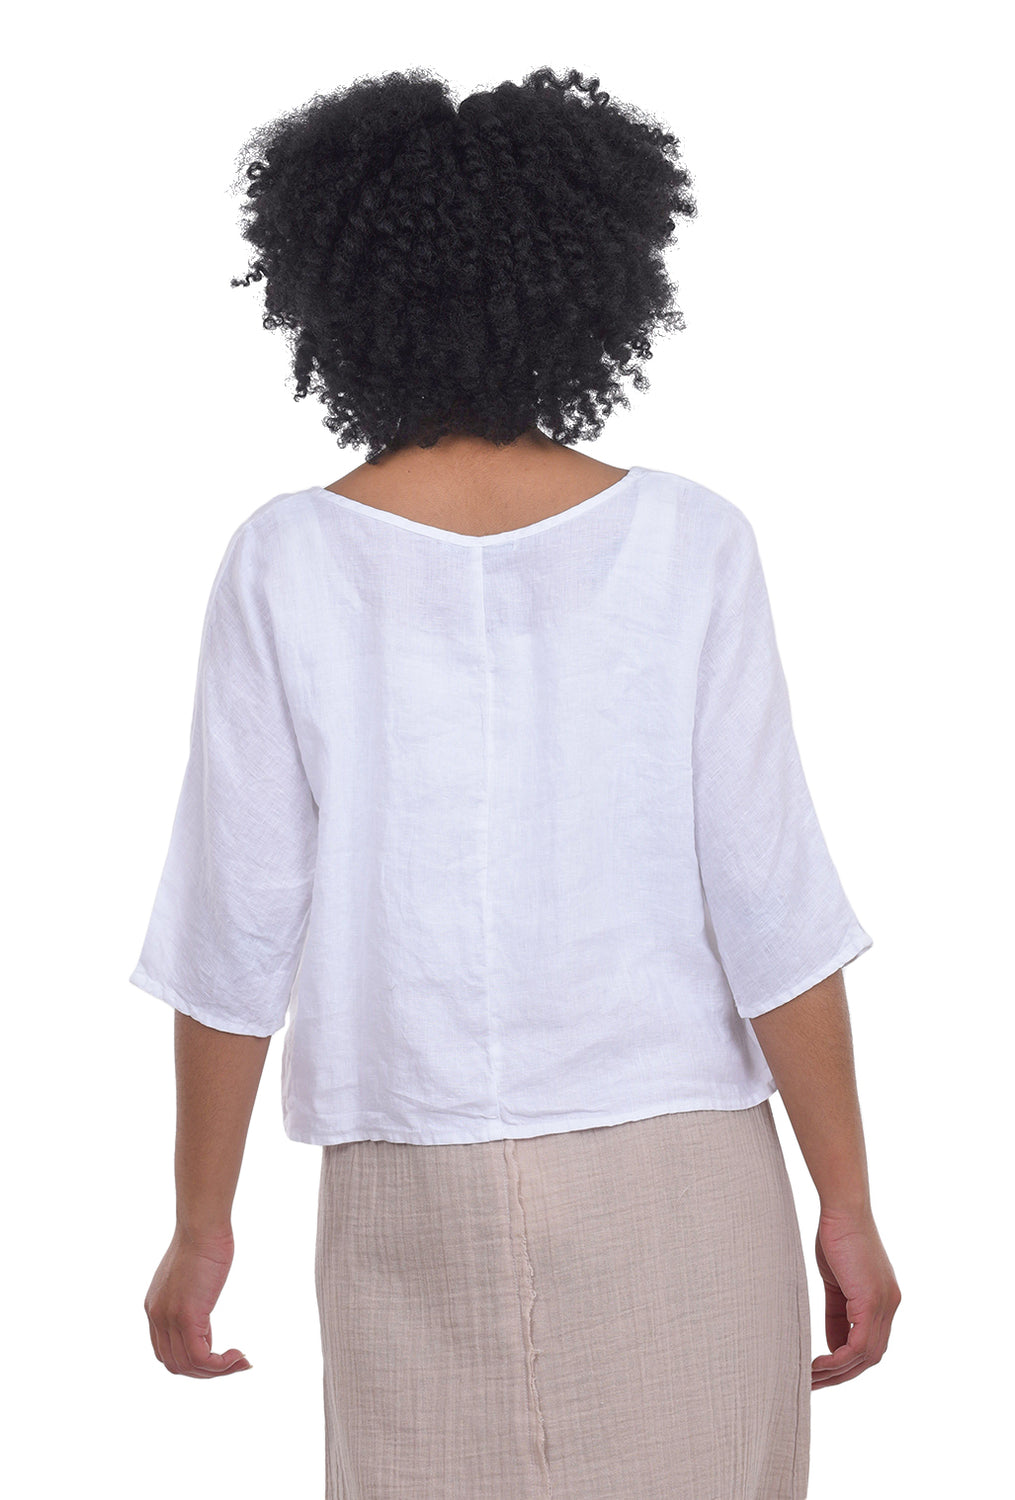 Cut Loose Hanky Linen Oversized Top, White One Size White